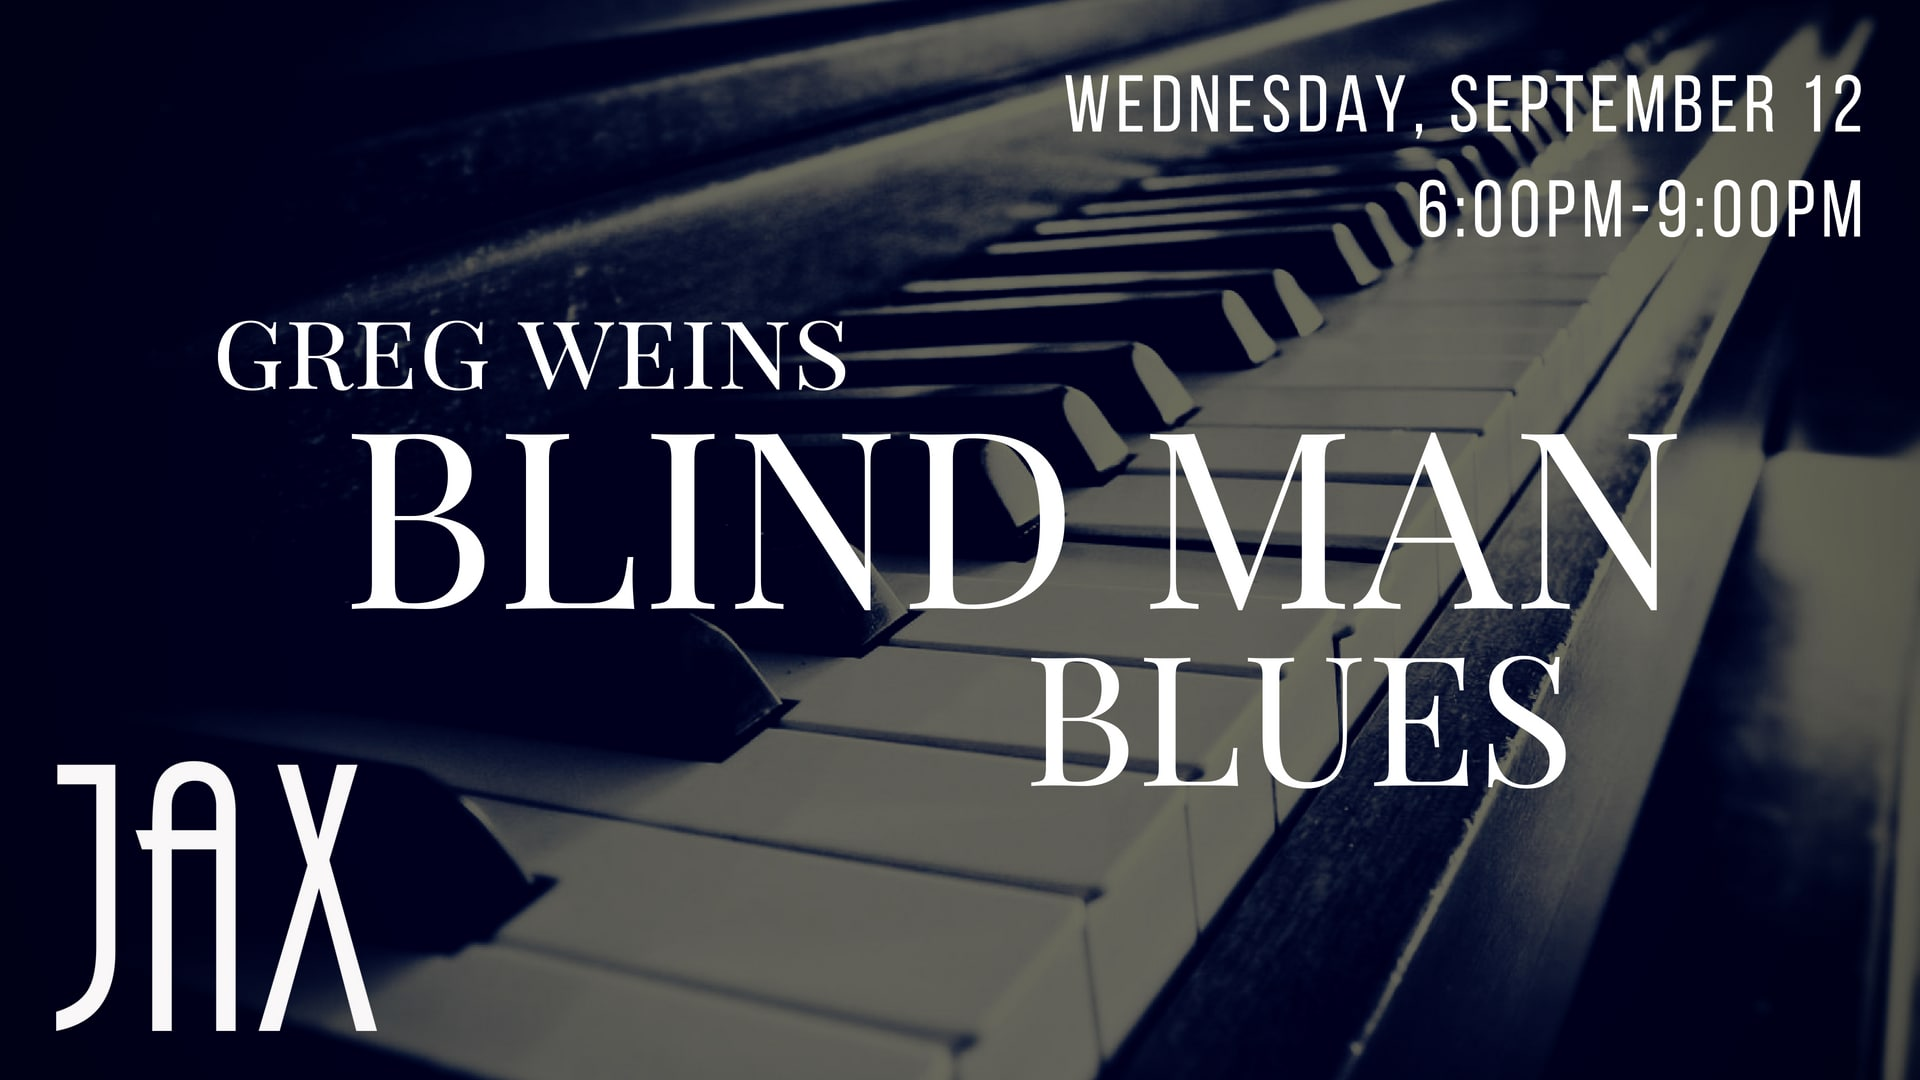 September 12 | WEDNESDAY NIGHT BLUES with GREG WEINS